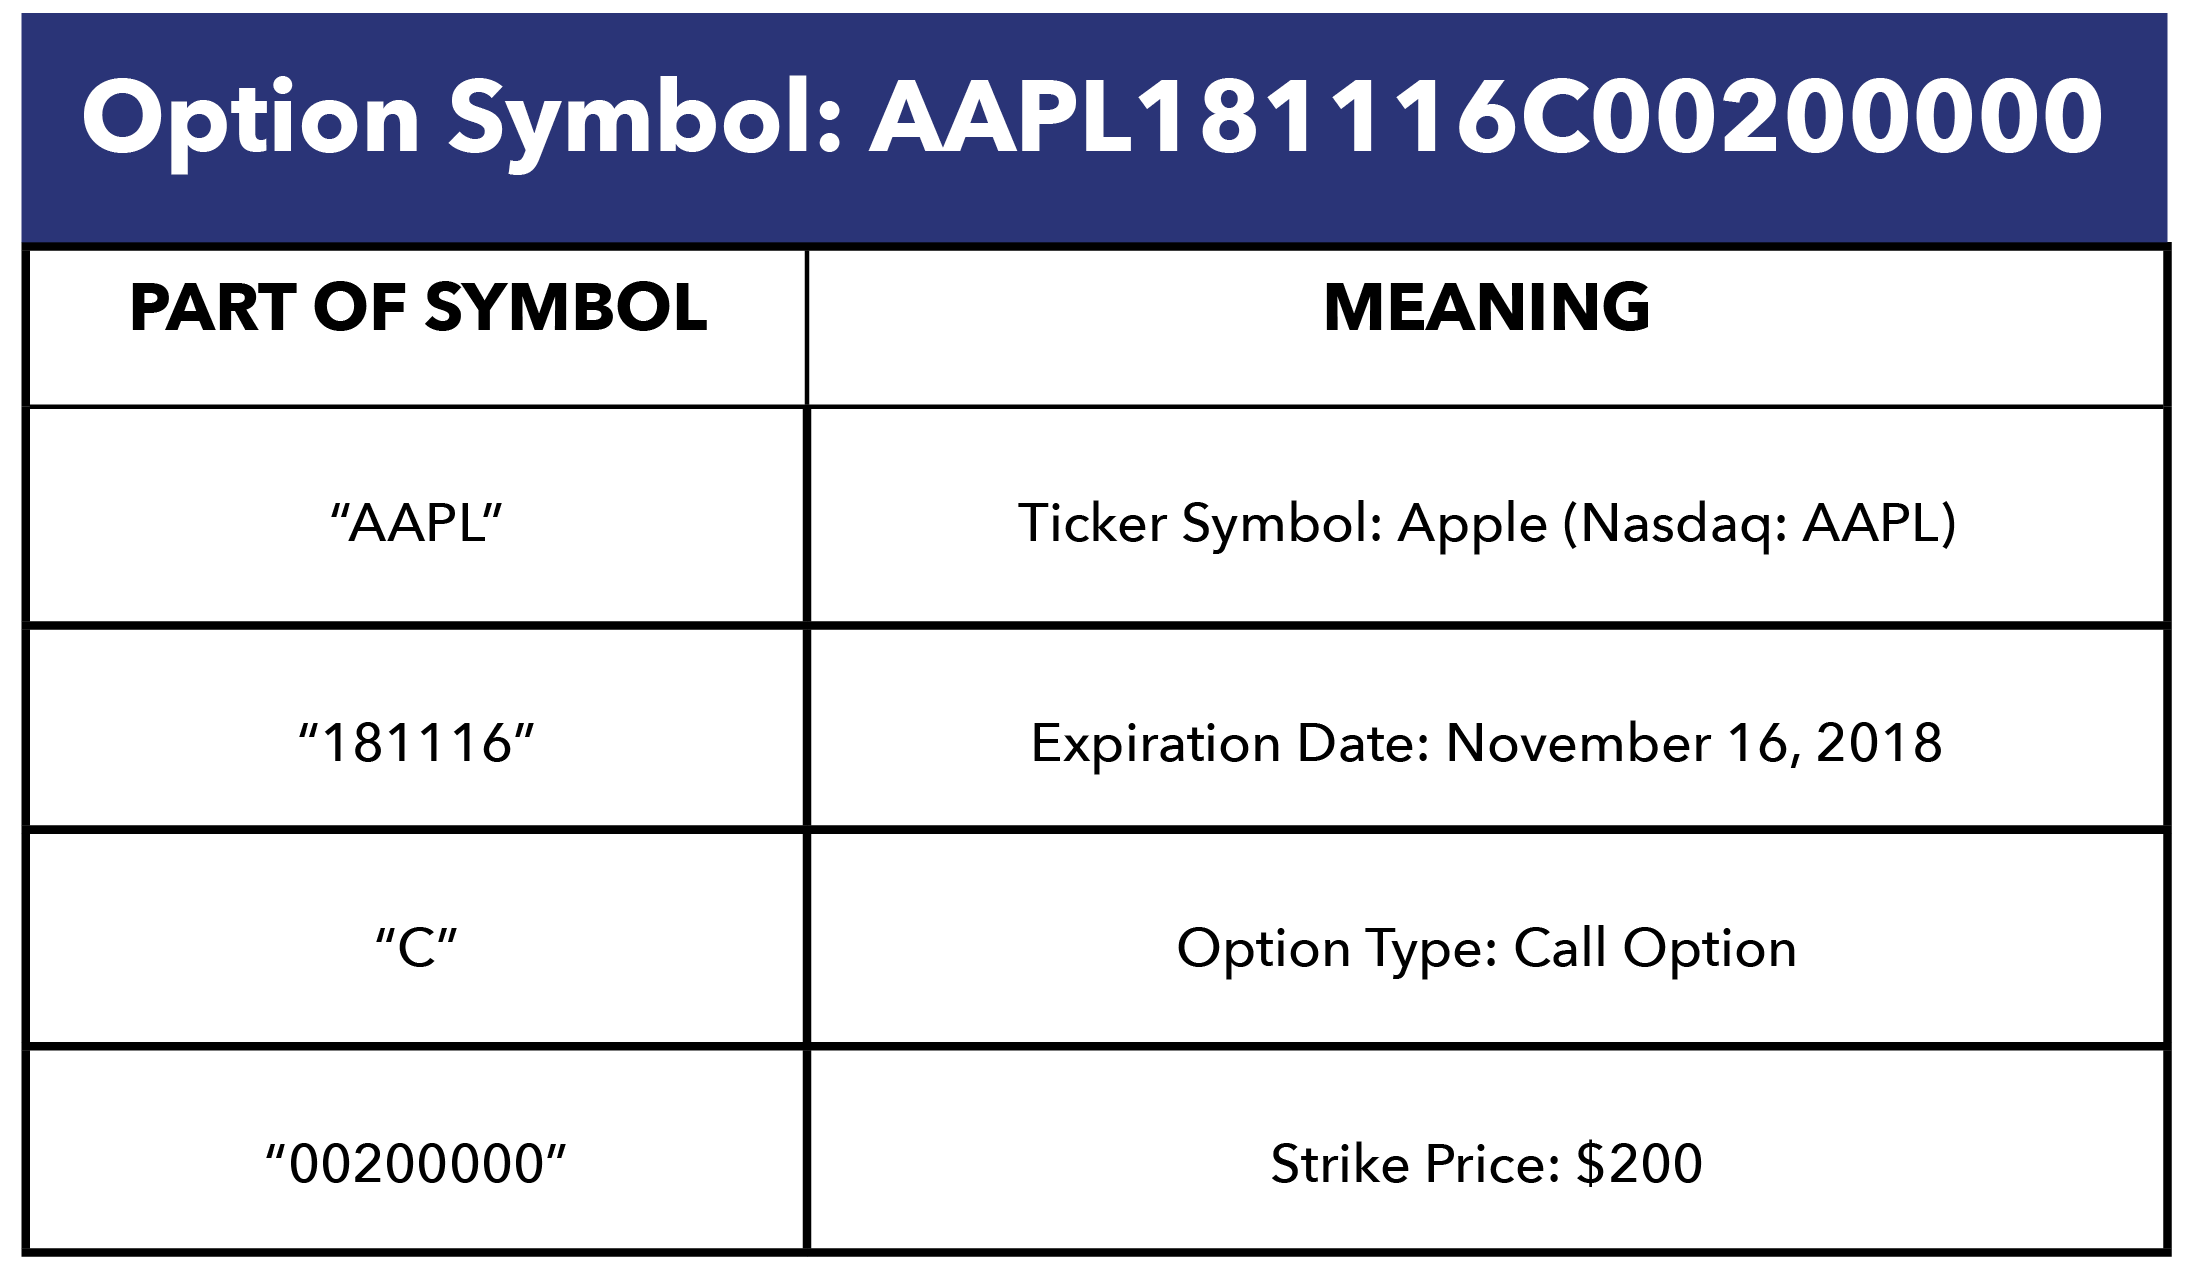 Table showing a breakdown of an option symbol.